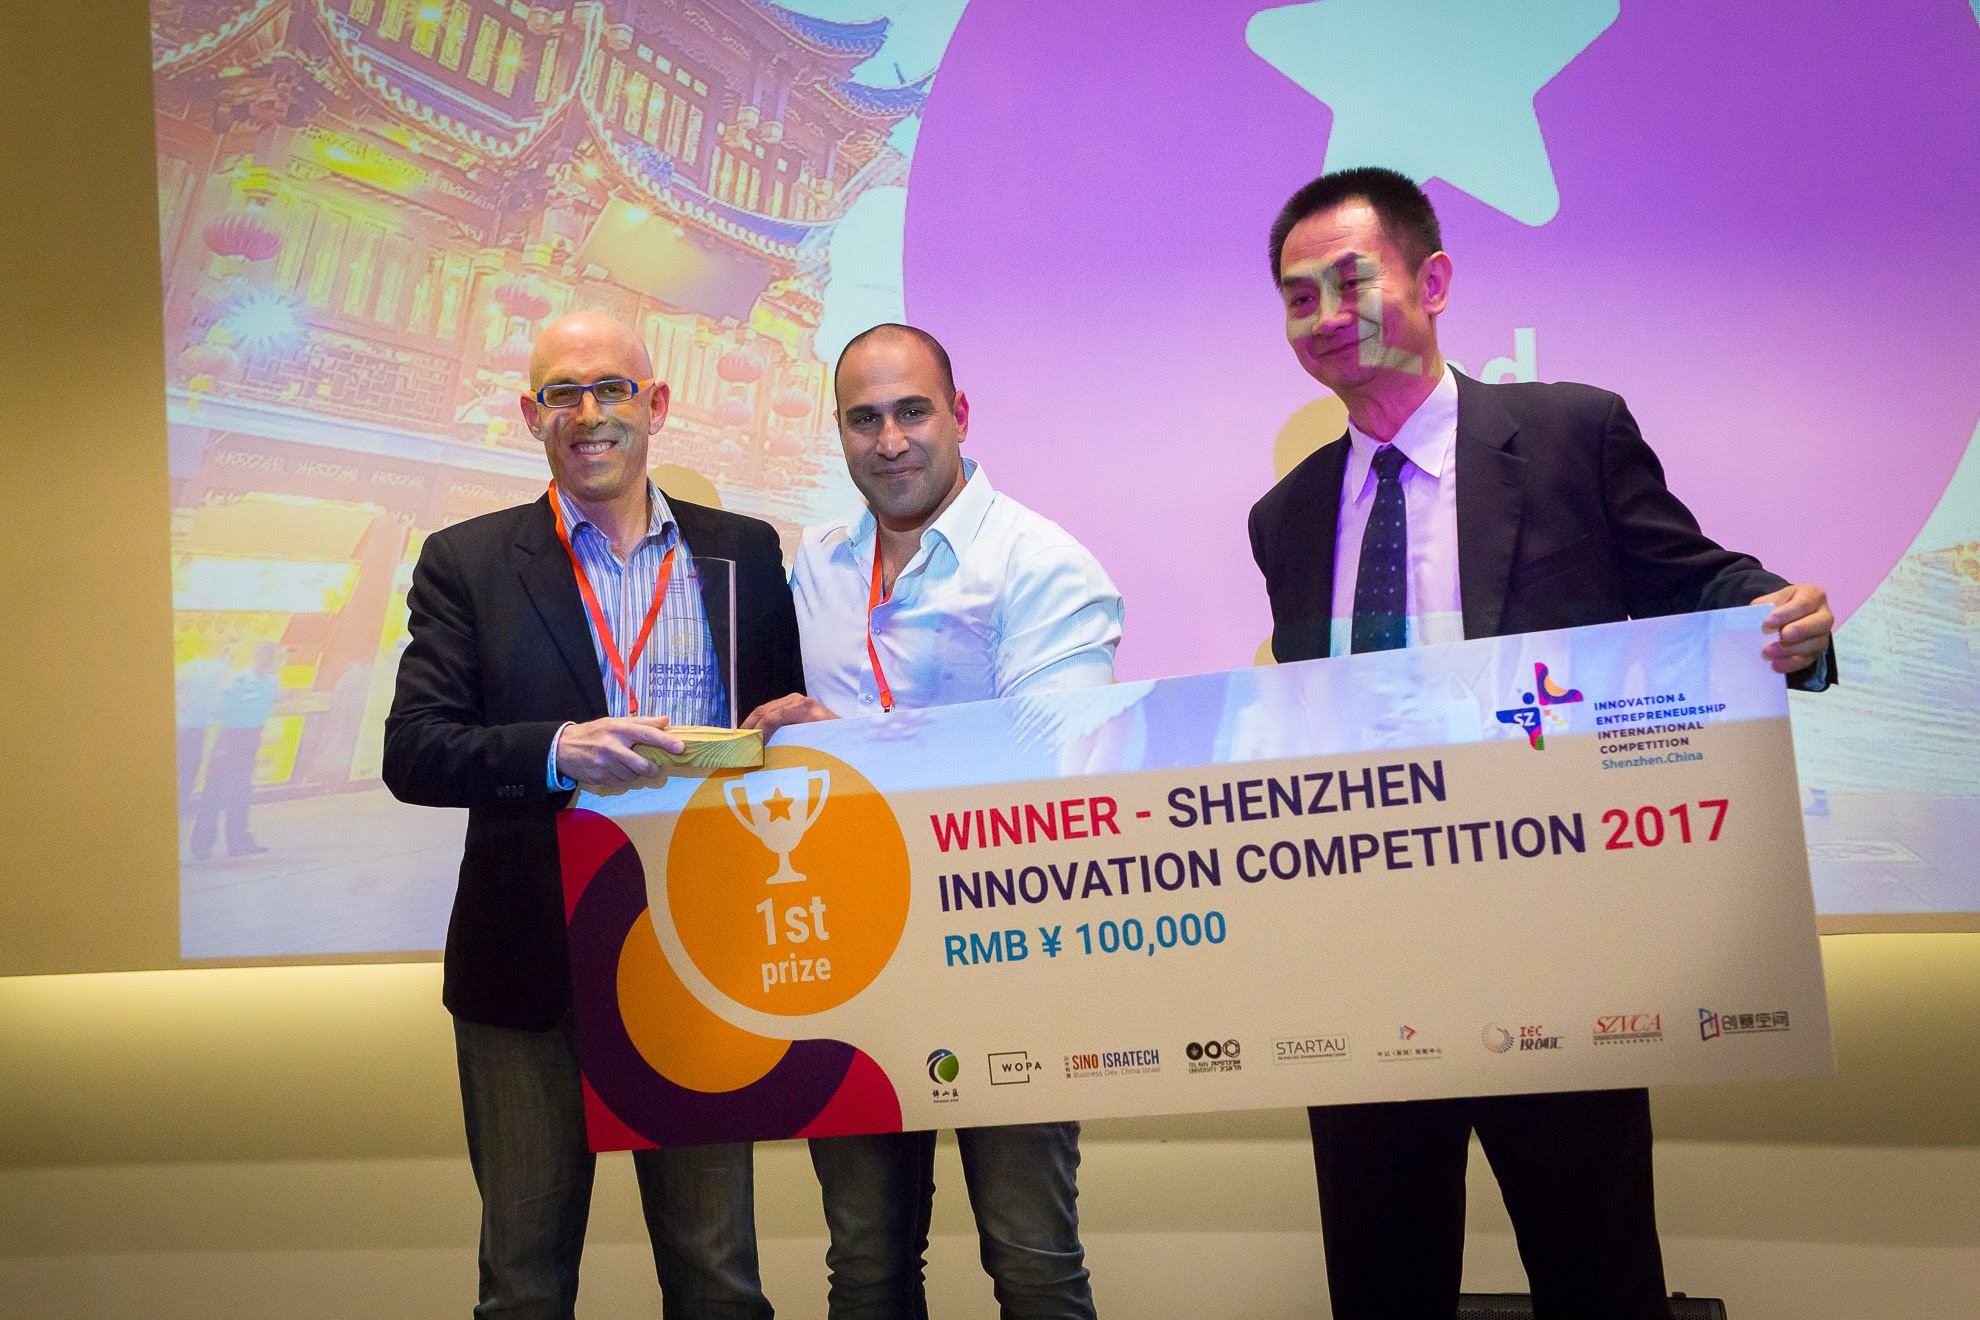 Superb Reality to win 1st award and RMB 100,000